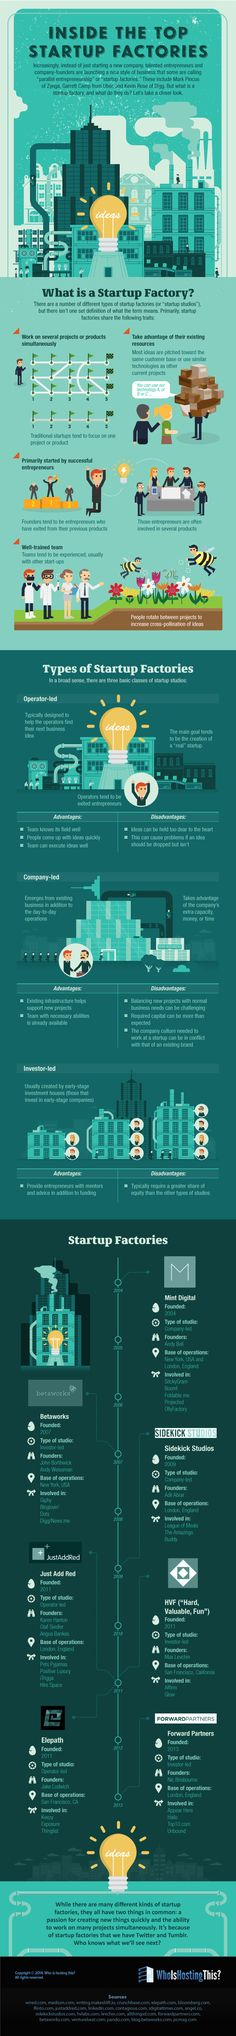 Inside the Top Startup Factories #infographic #Startup #Business #Entrepreneur